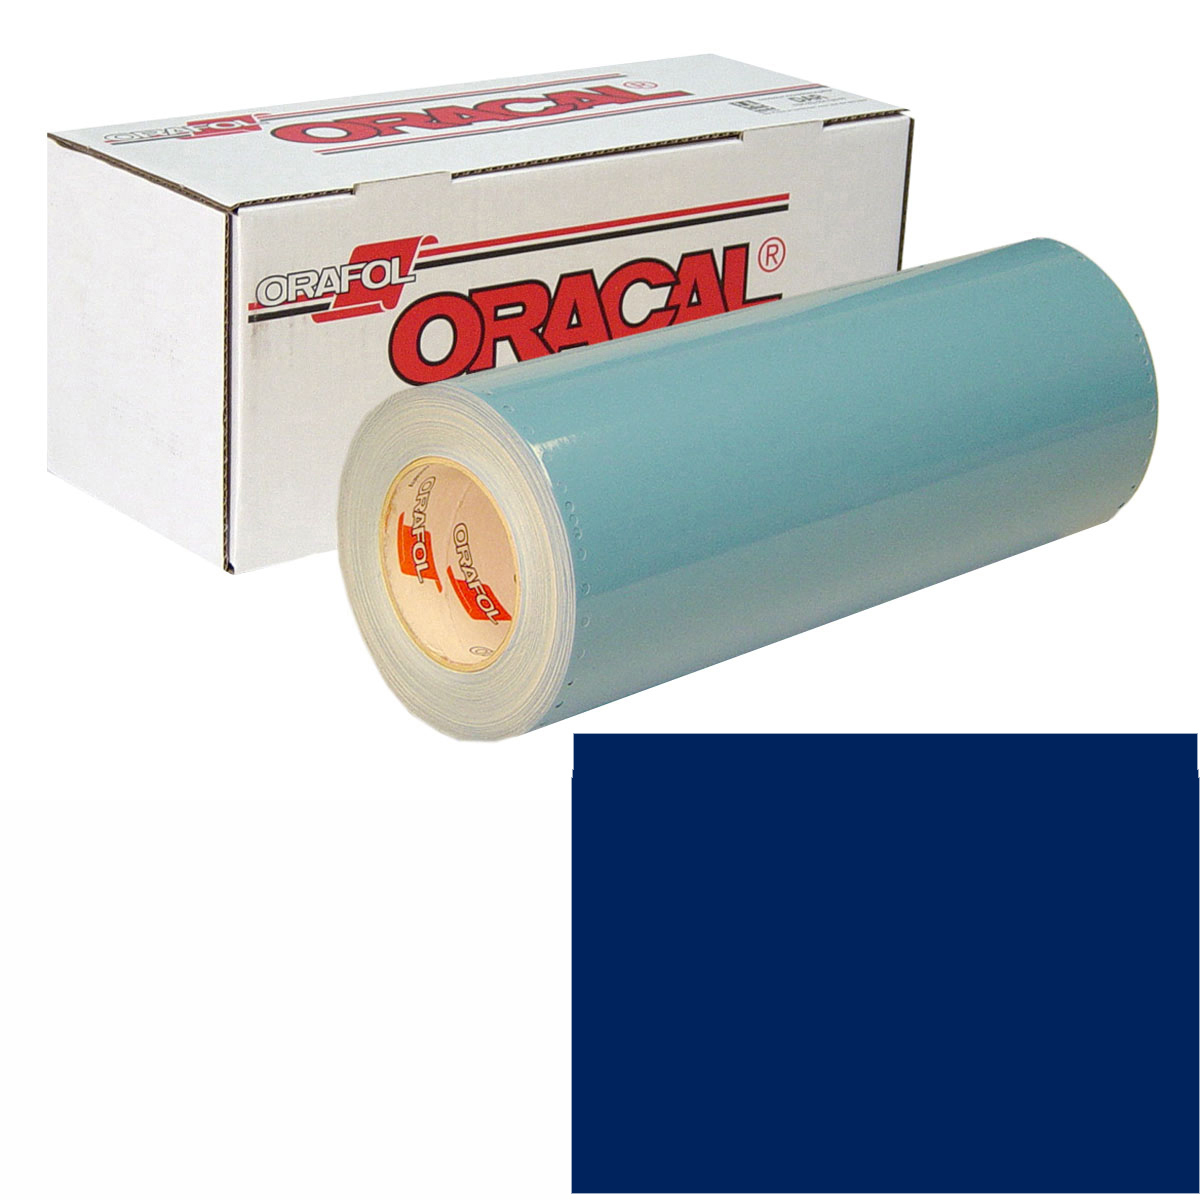 ORACAL 751 Unp 48in X 50yd 058 Ultramarine Bl